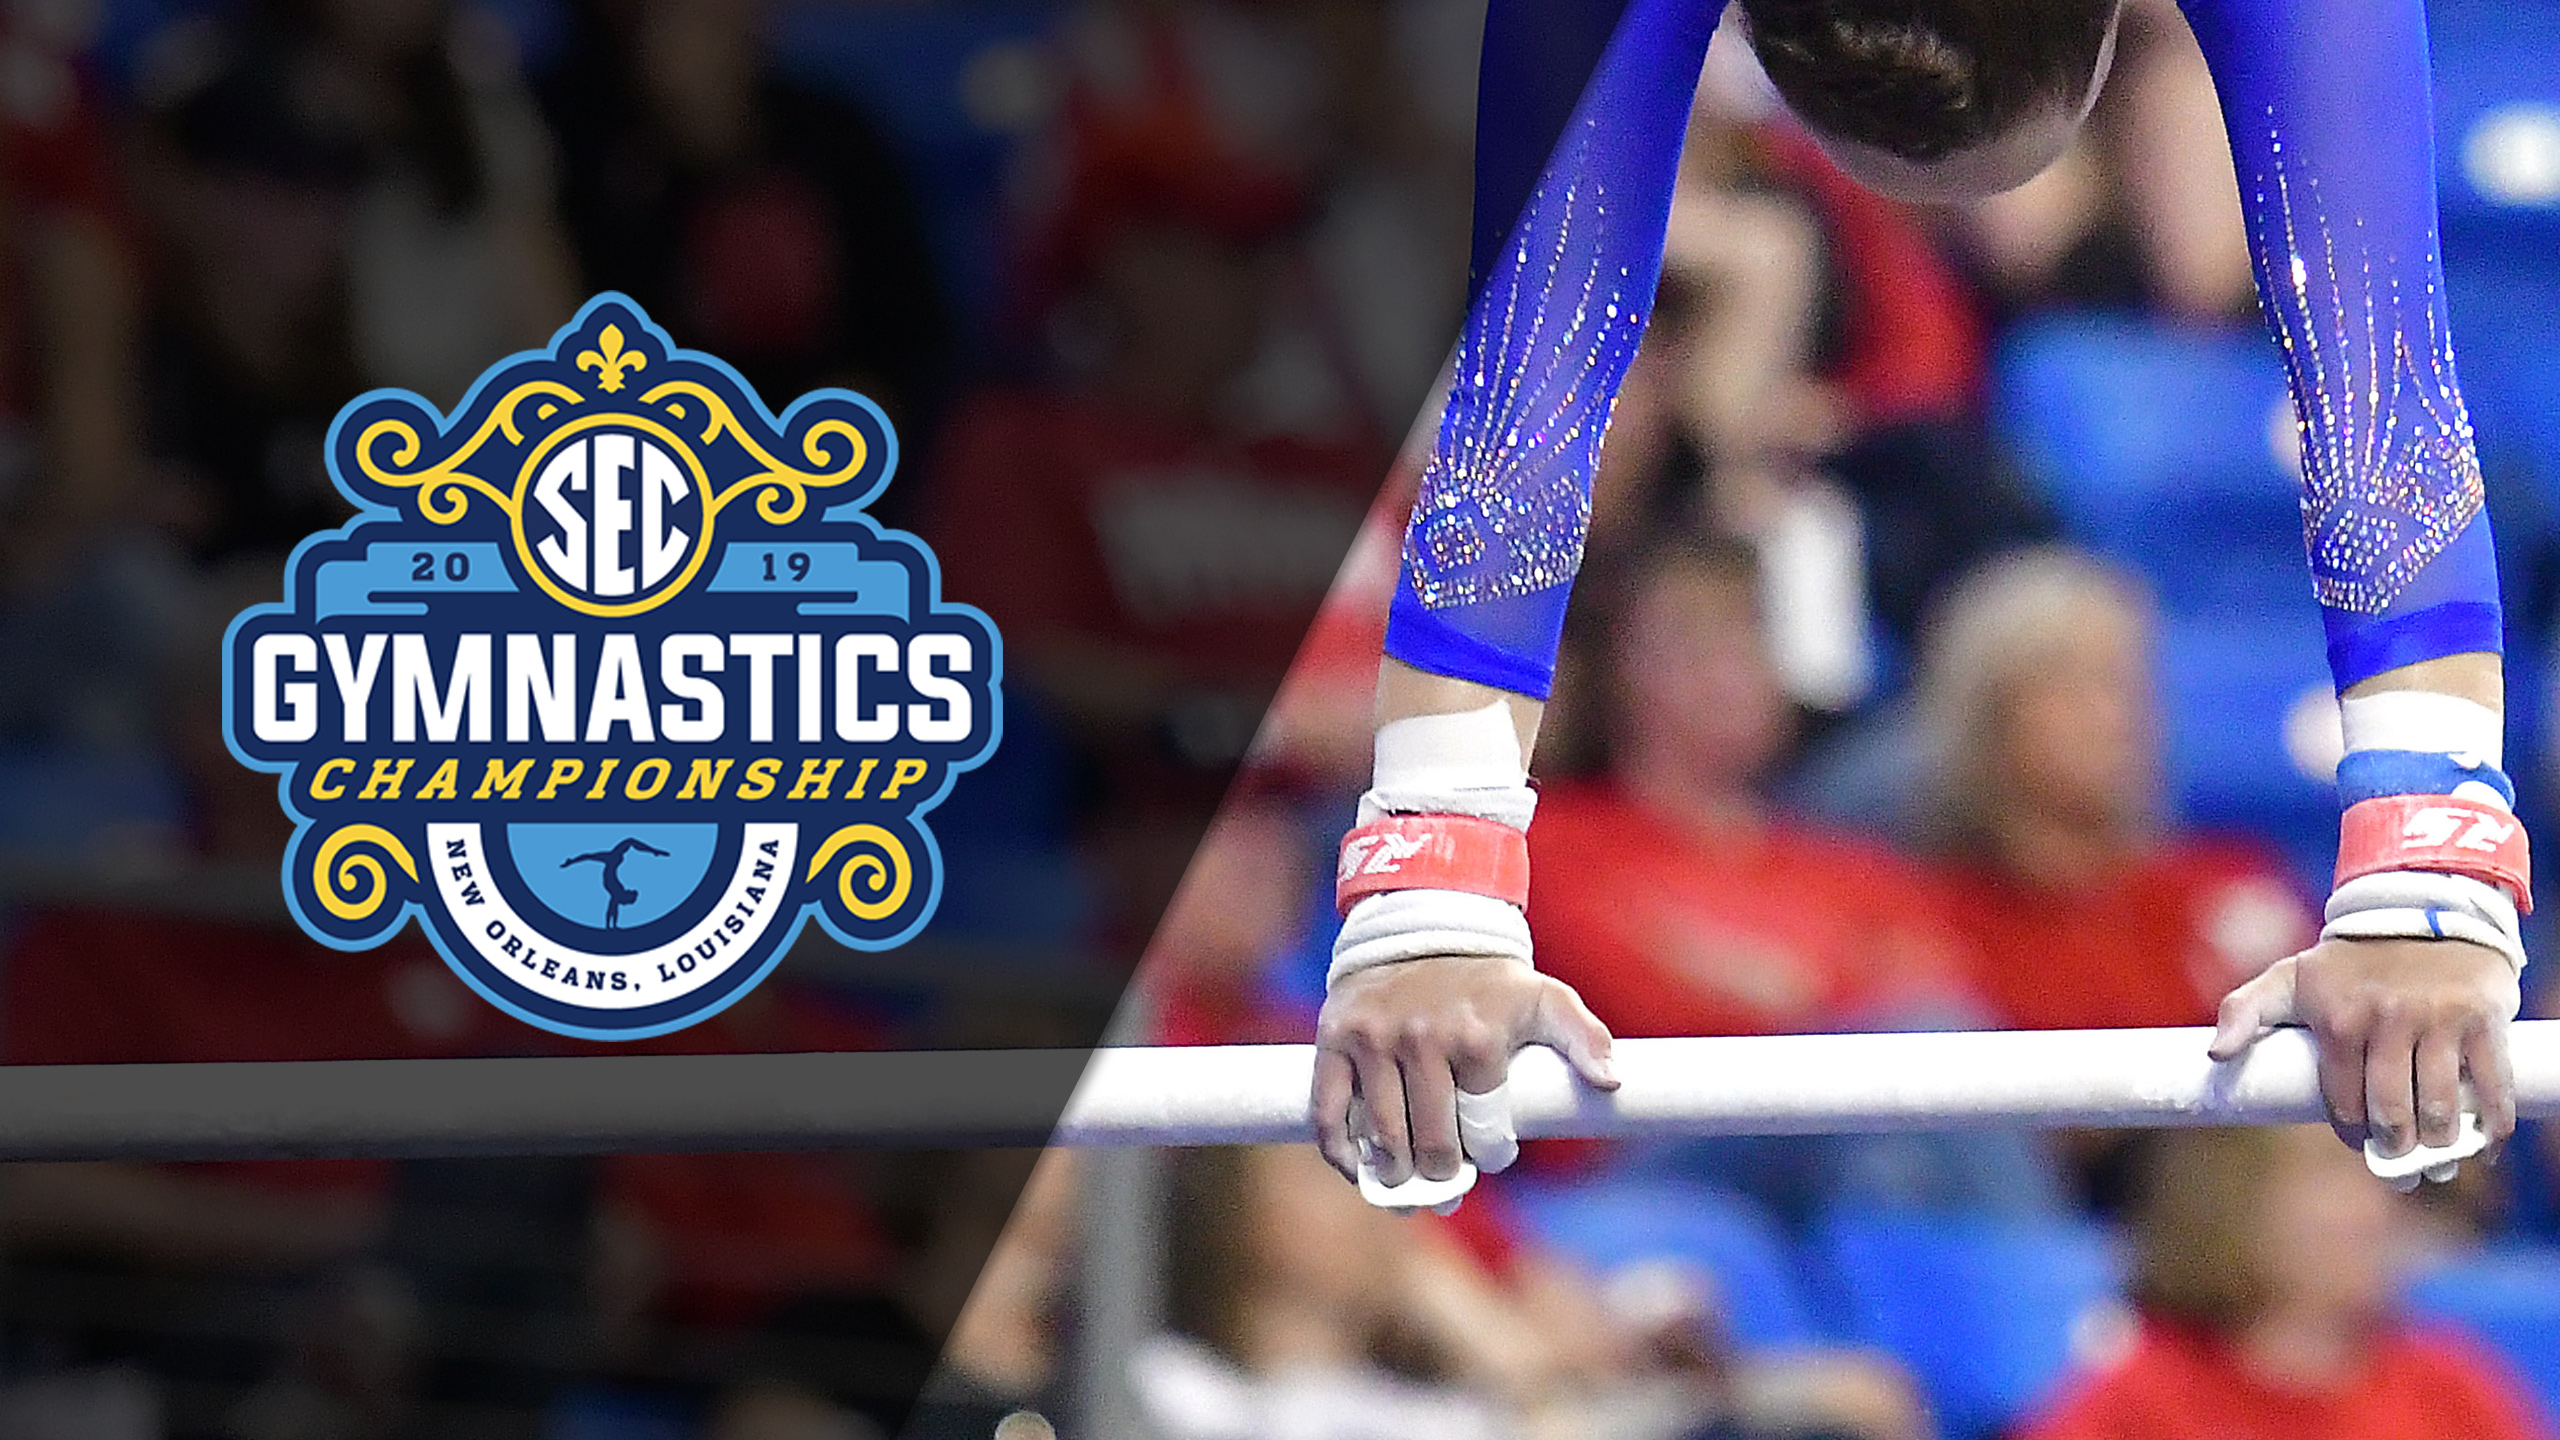 SEC Gymnastics Championship - Bars (Evening Session)